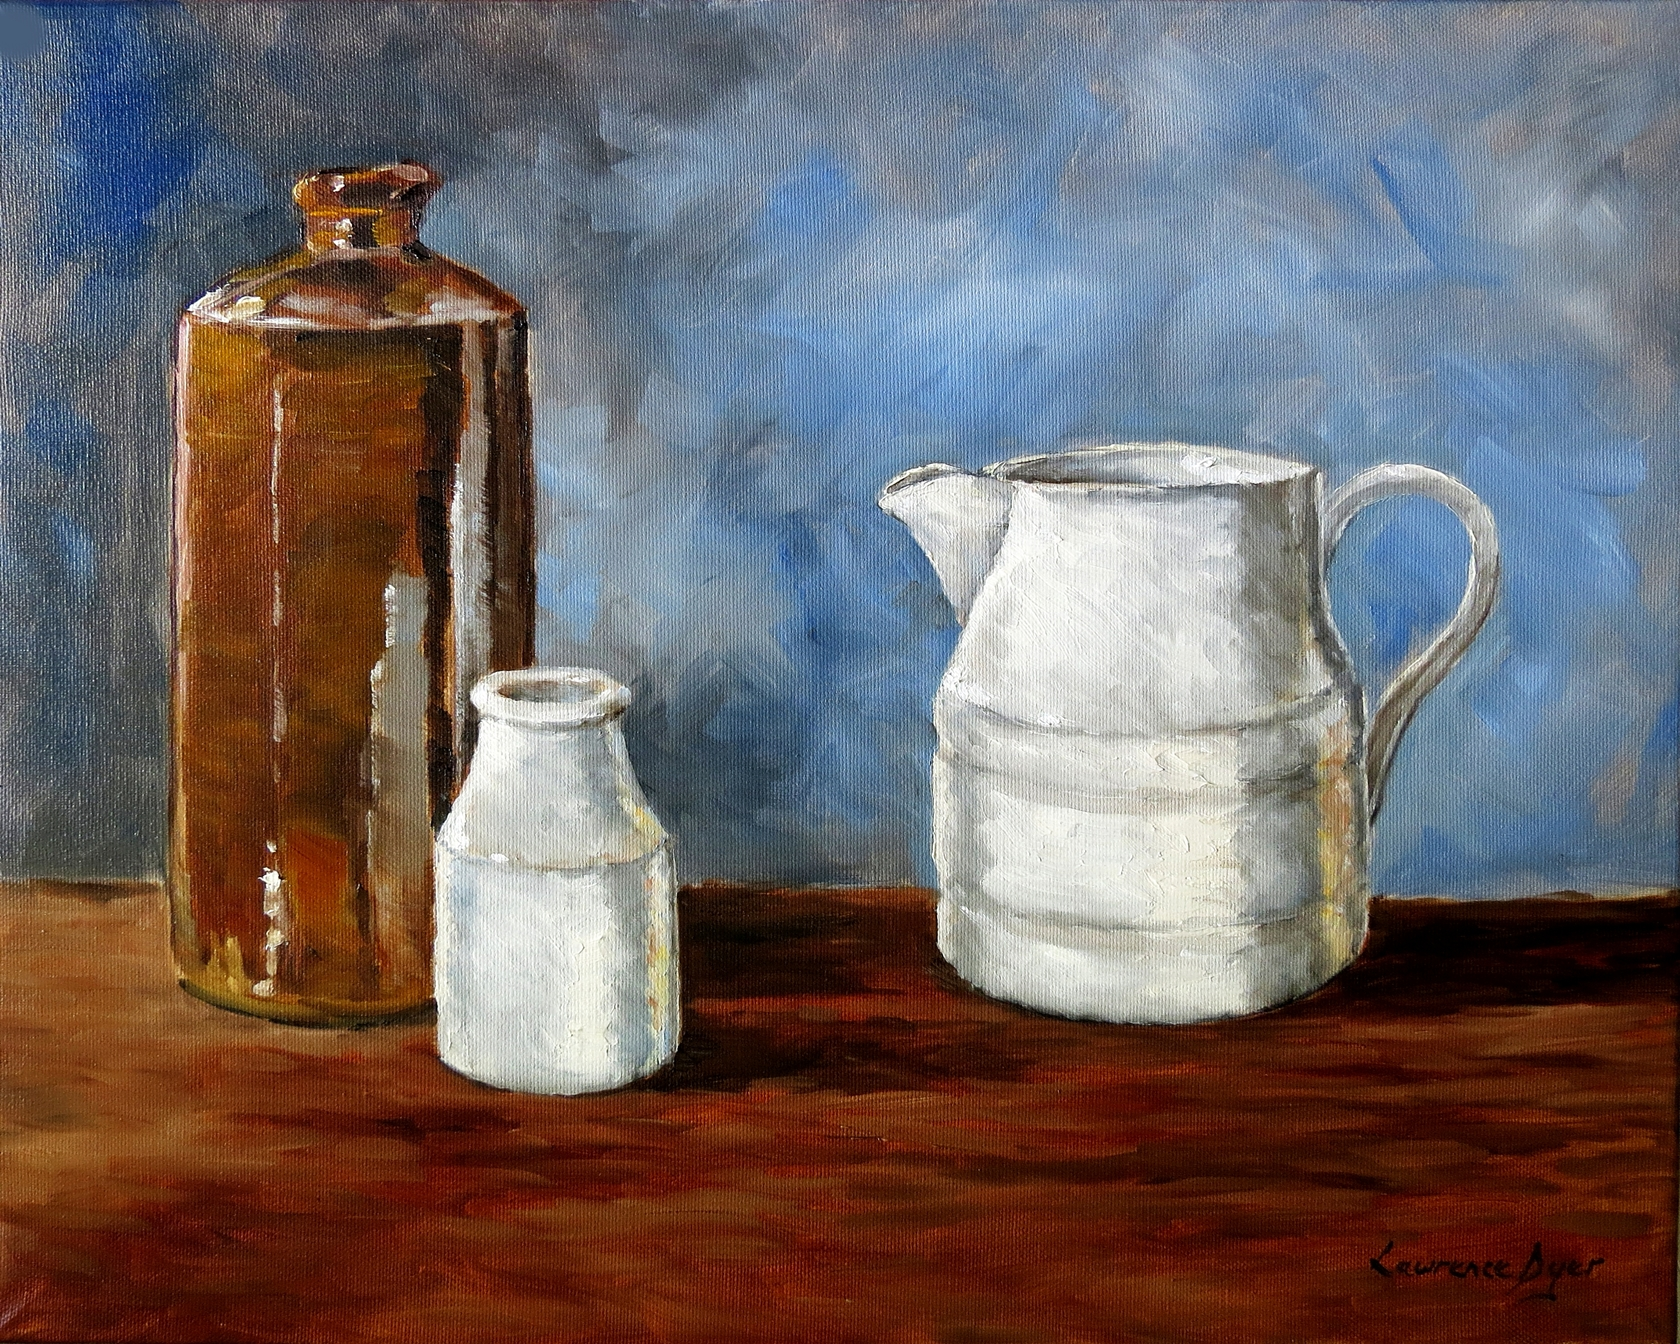 Ink and Milk Pots by Lawrence Dyer